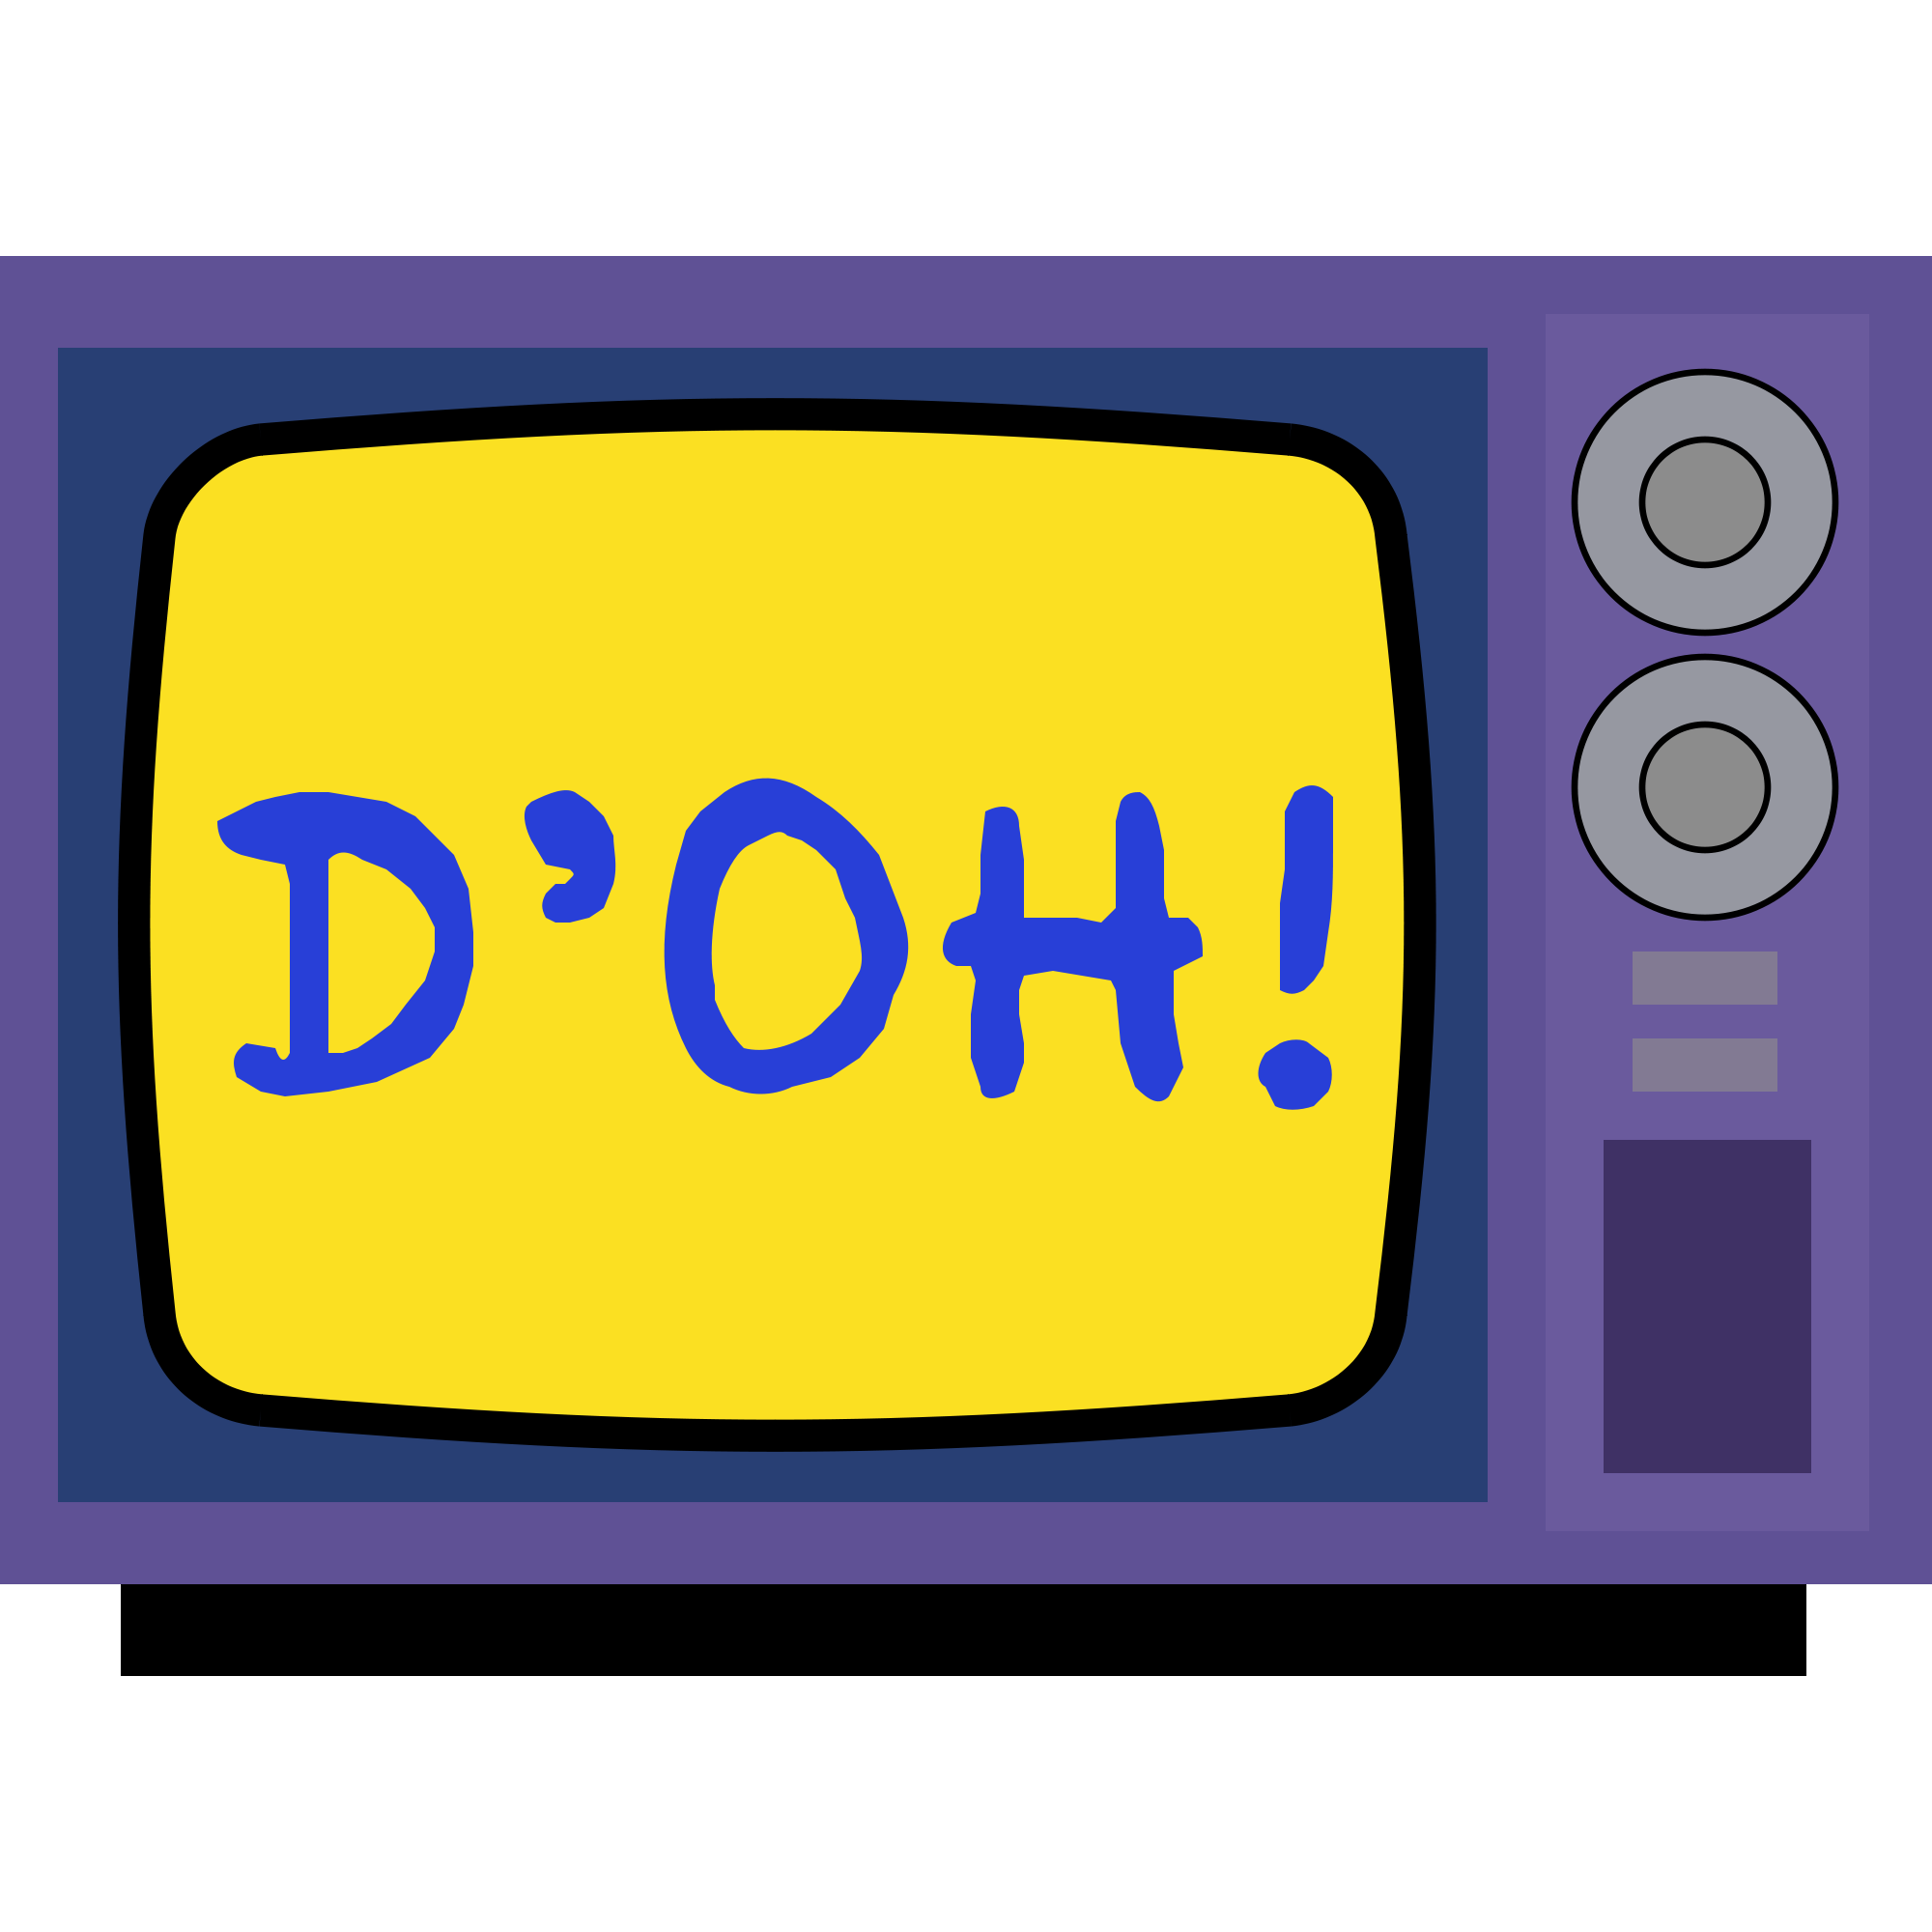 Simpsons tv png. File icon svg wikimedia